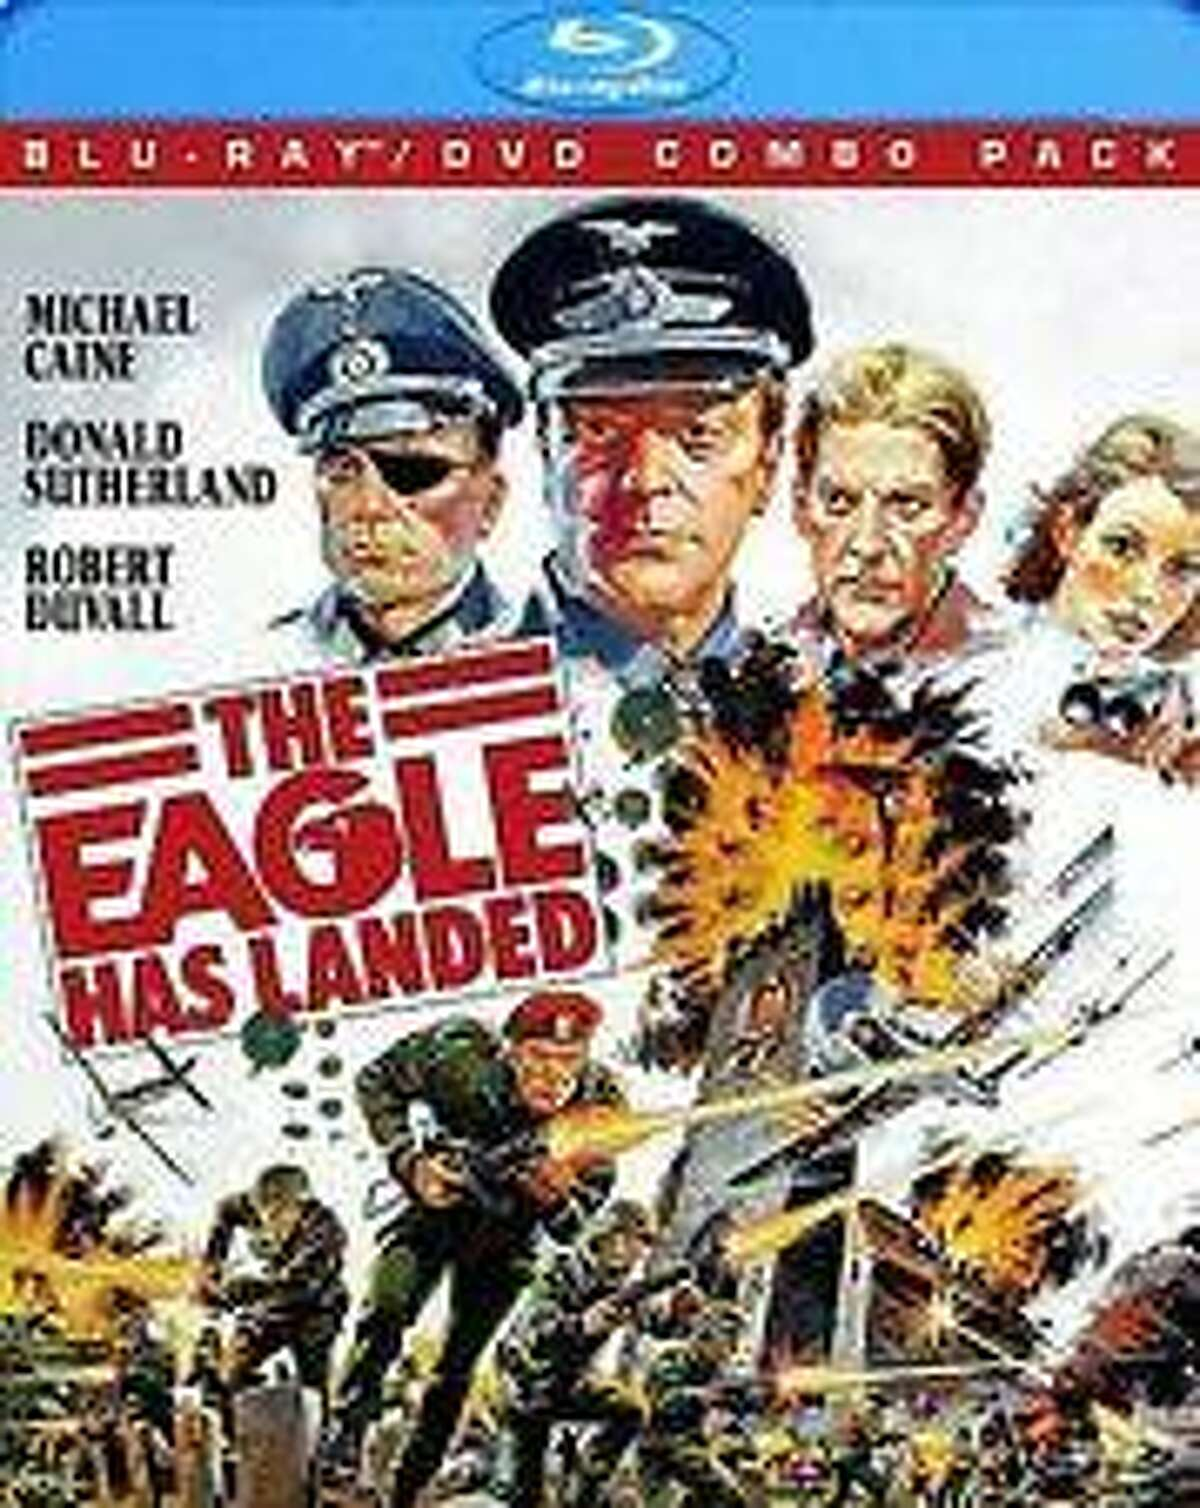 """The cover of the move, """"The Eagle Has Landed: Collector's Edition"""" on DVD."""